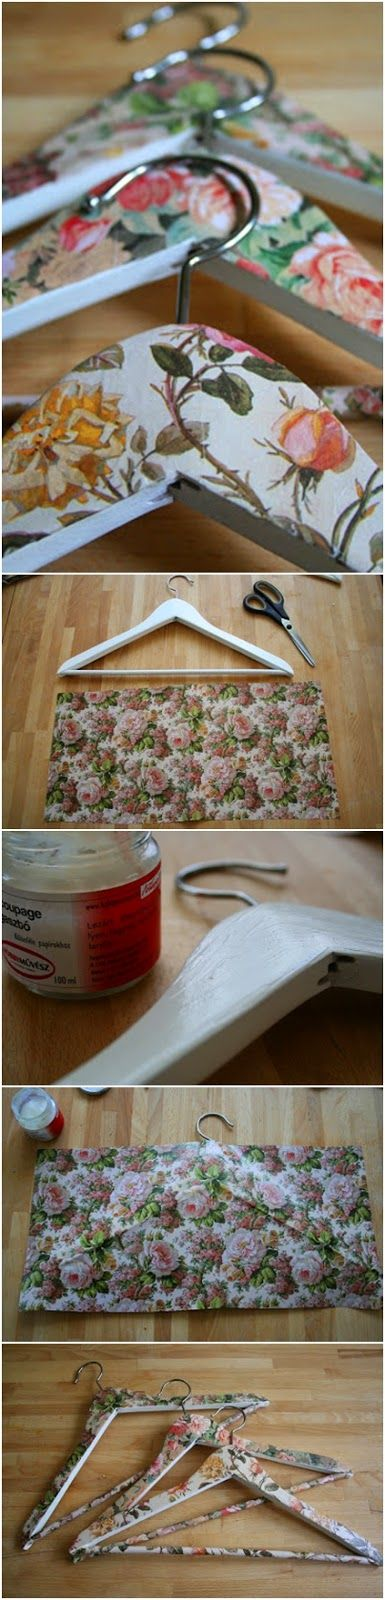 http://diycollection1.blogspot.com/search?updated-max=2014-04-25T12:05:00-07:00